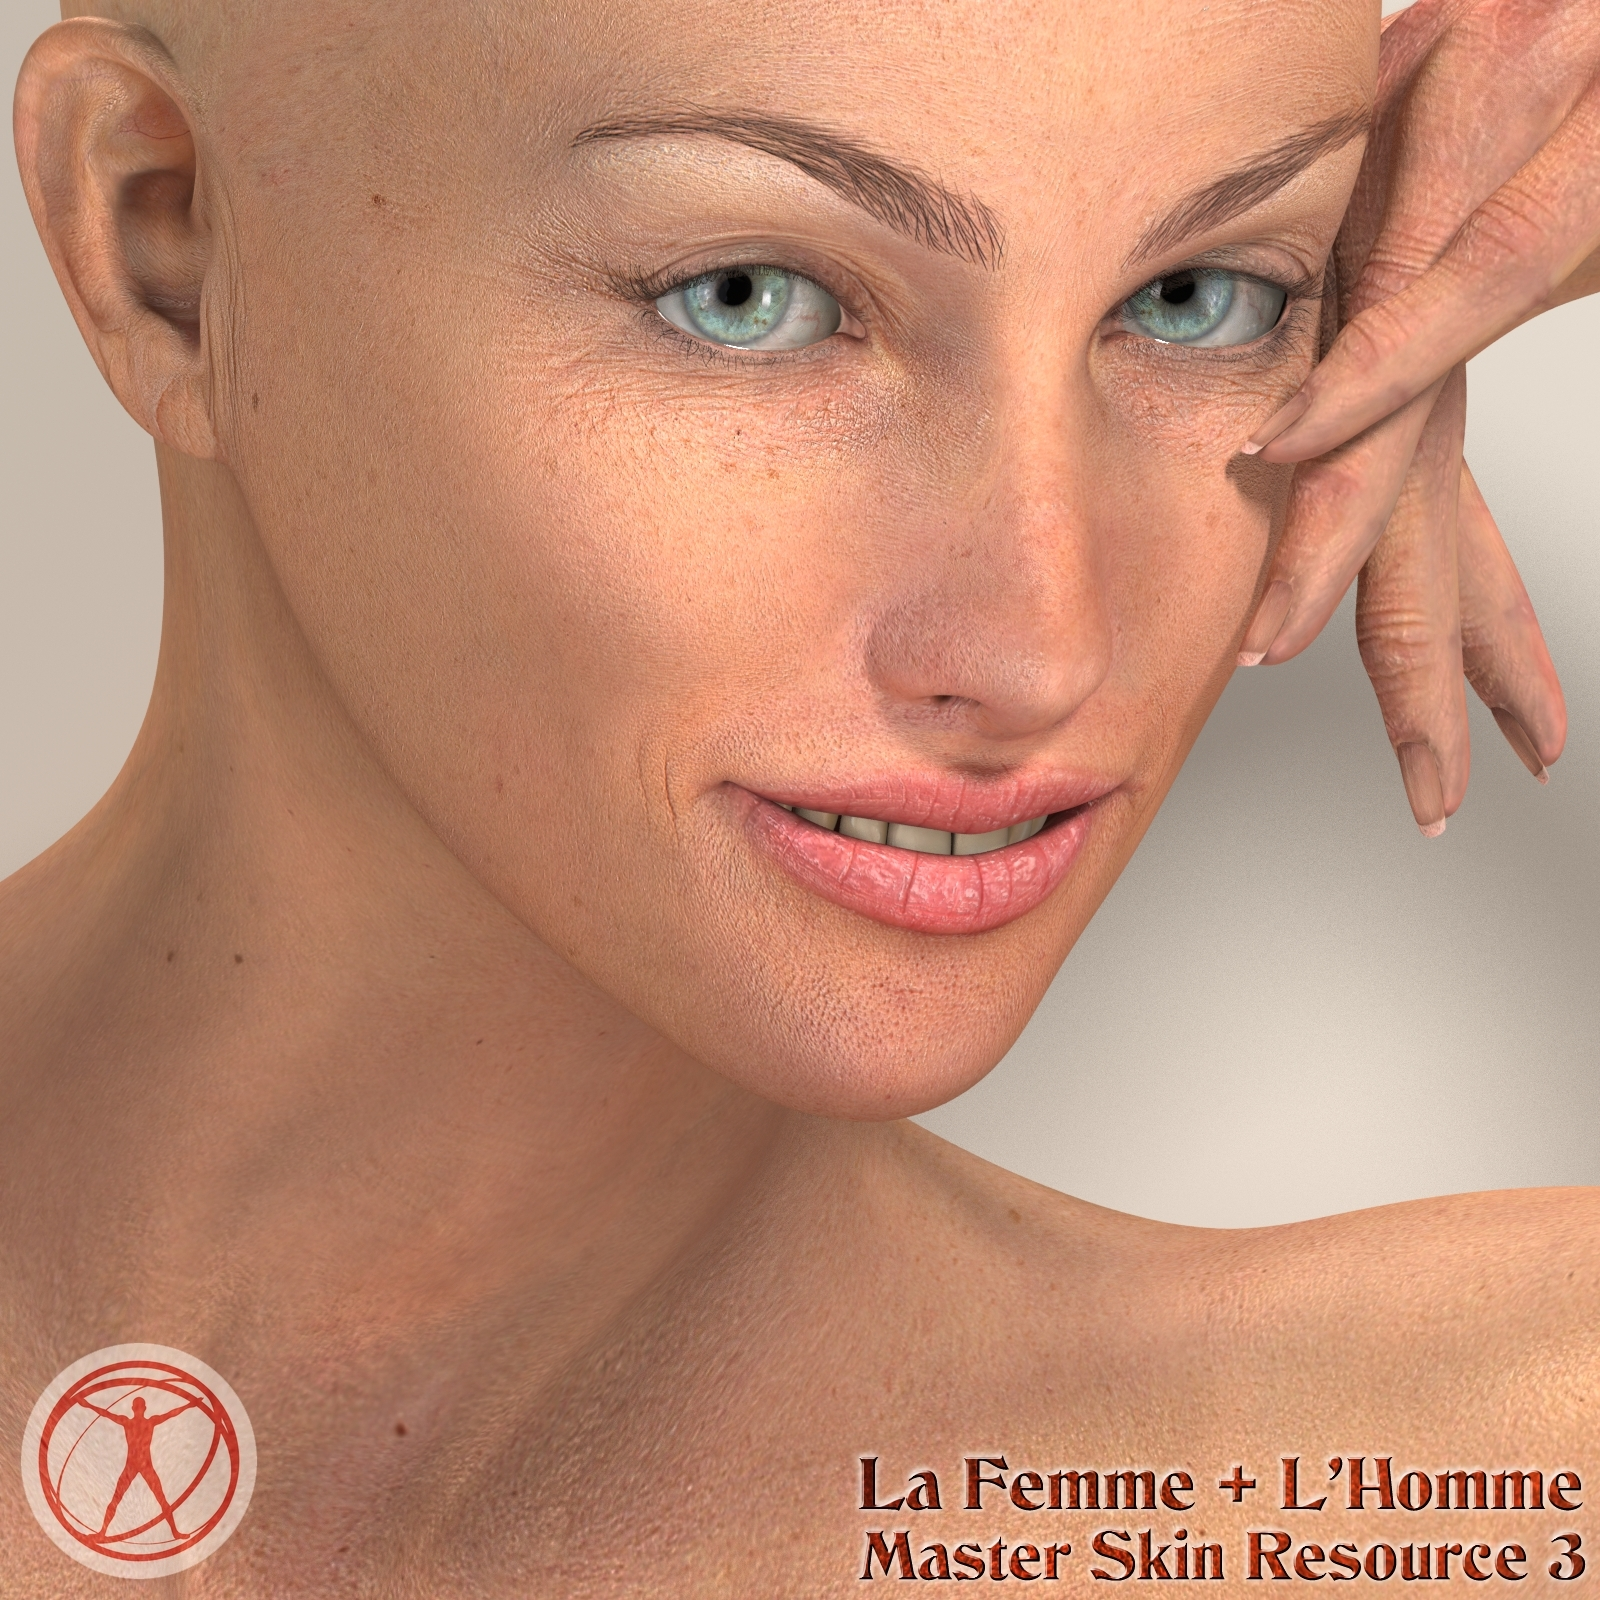 La Femme  and L'Homme - Master Skin Resource 3 by 3Dream